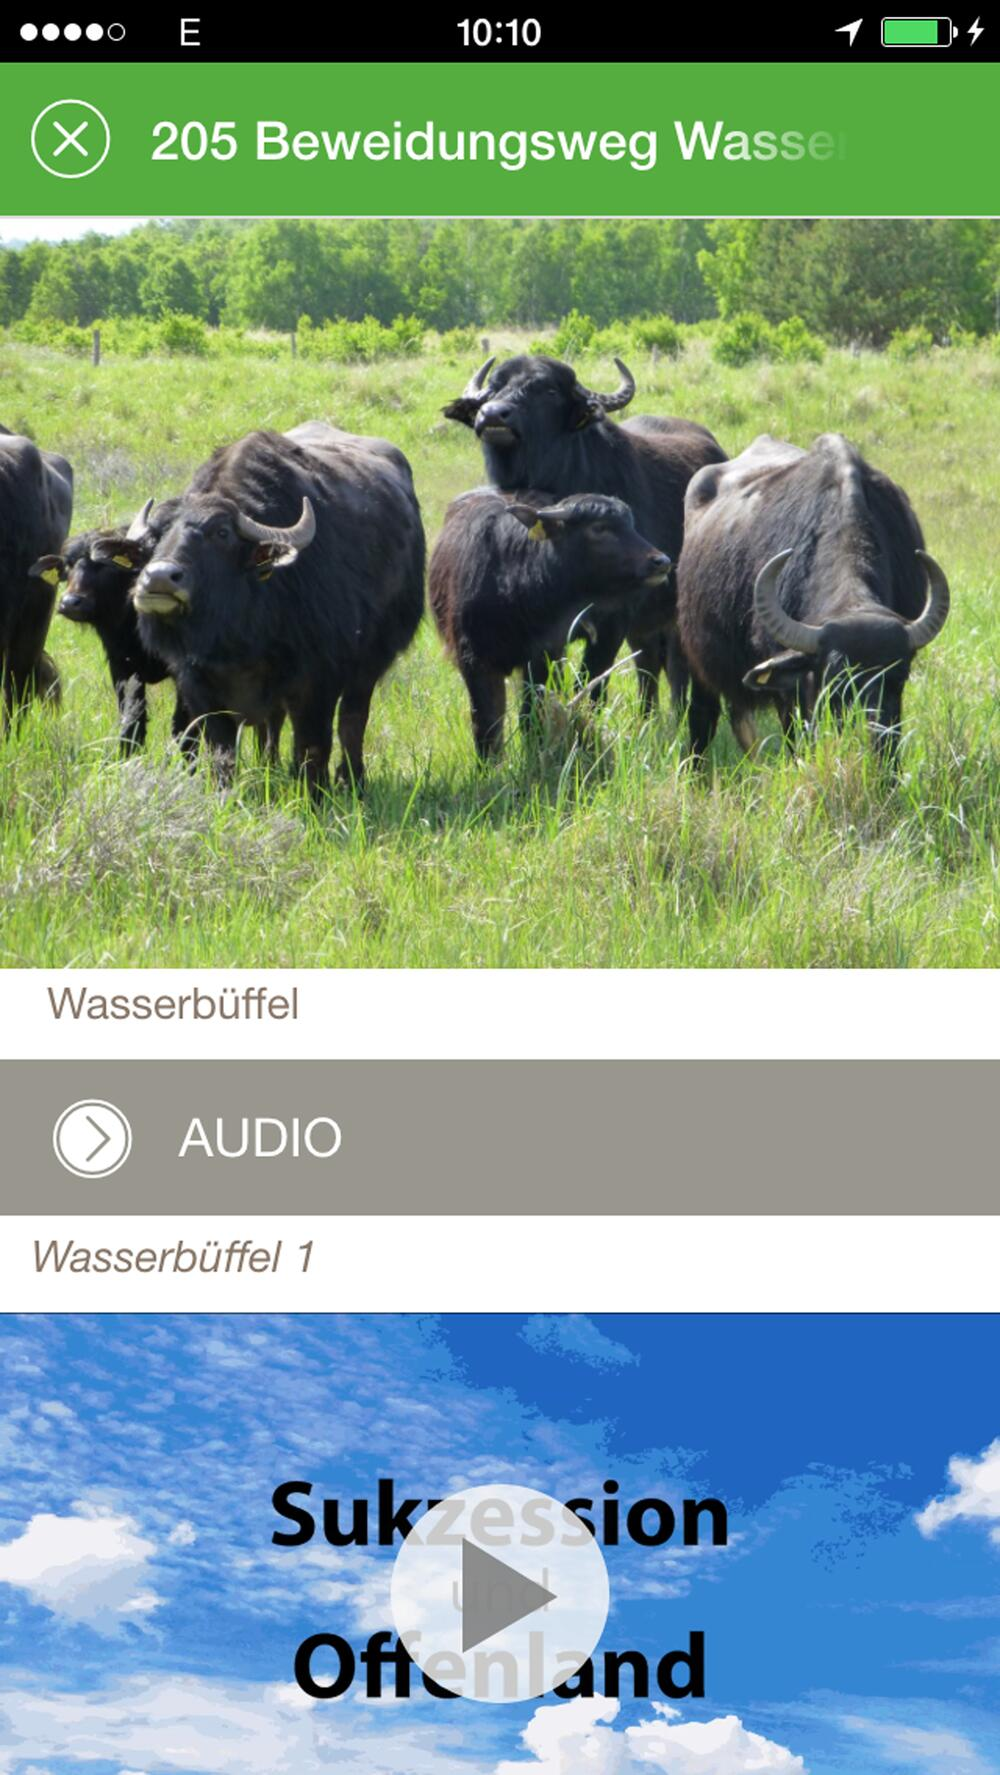 Animation, Fotos und Audiodatei zu einem Point of Interest. © DBU Naturerbe